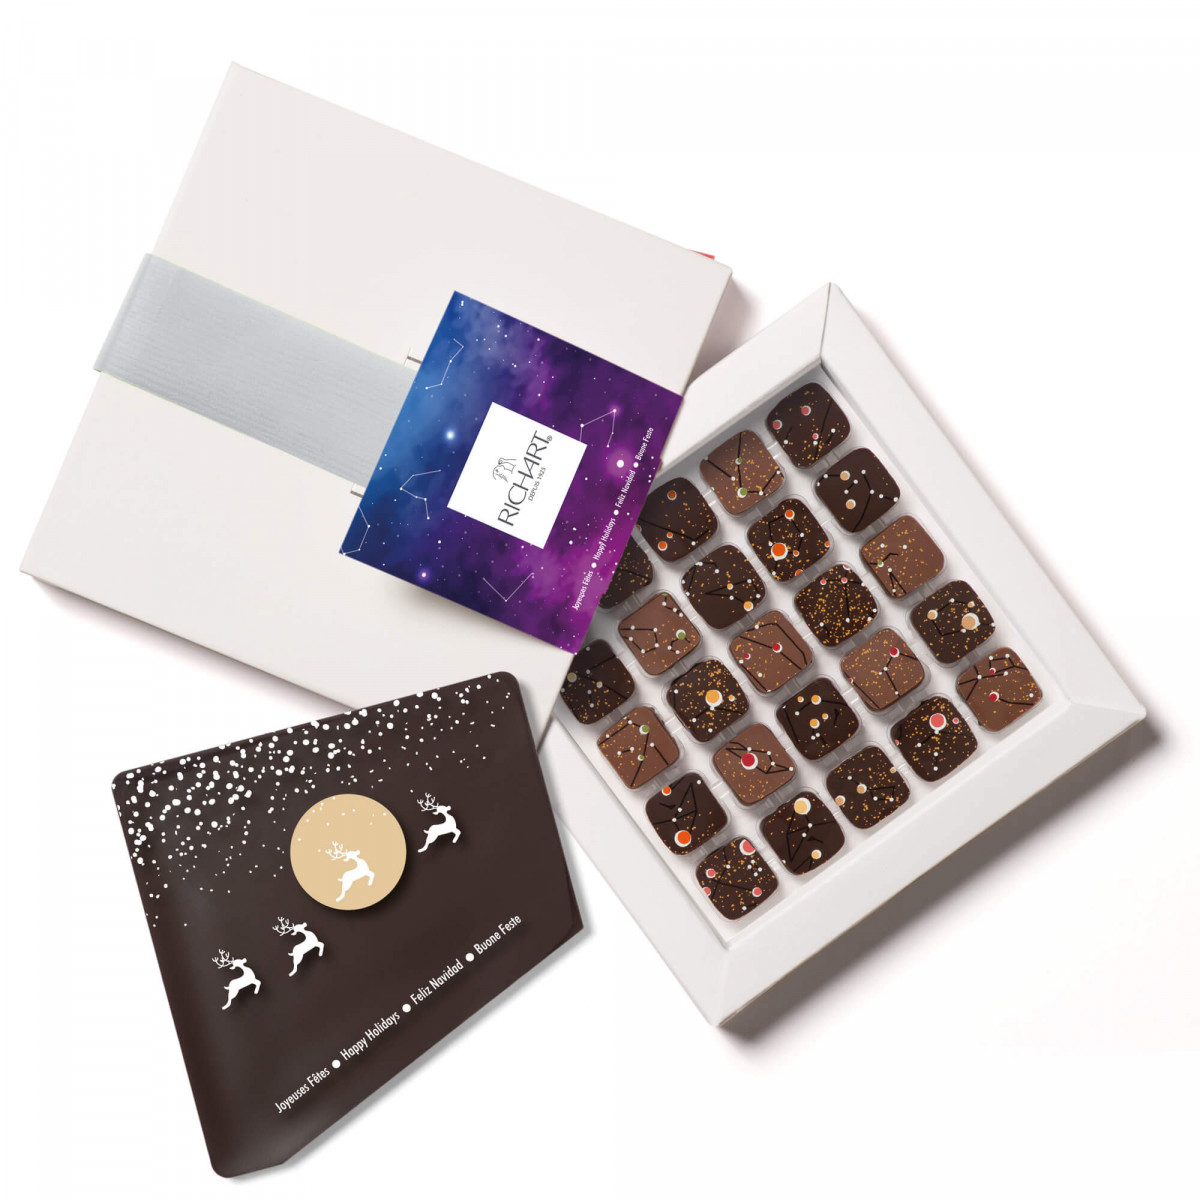 Constellations coffret 25 chocolats + 1 plaque message en chocolat